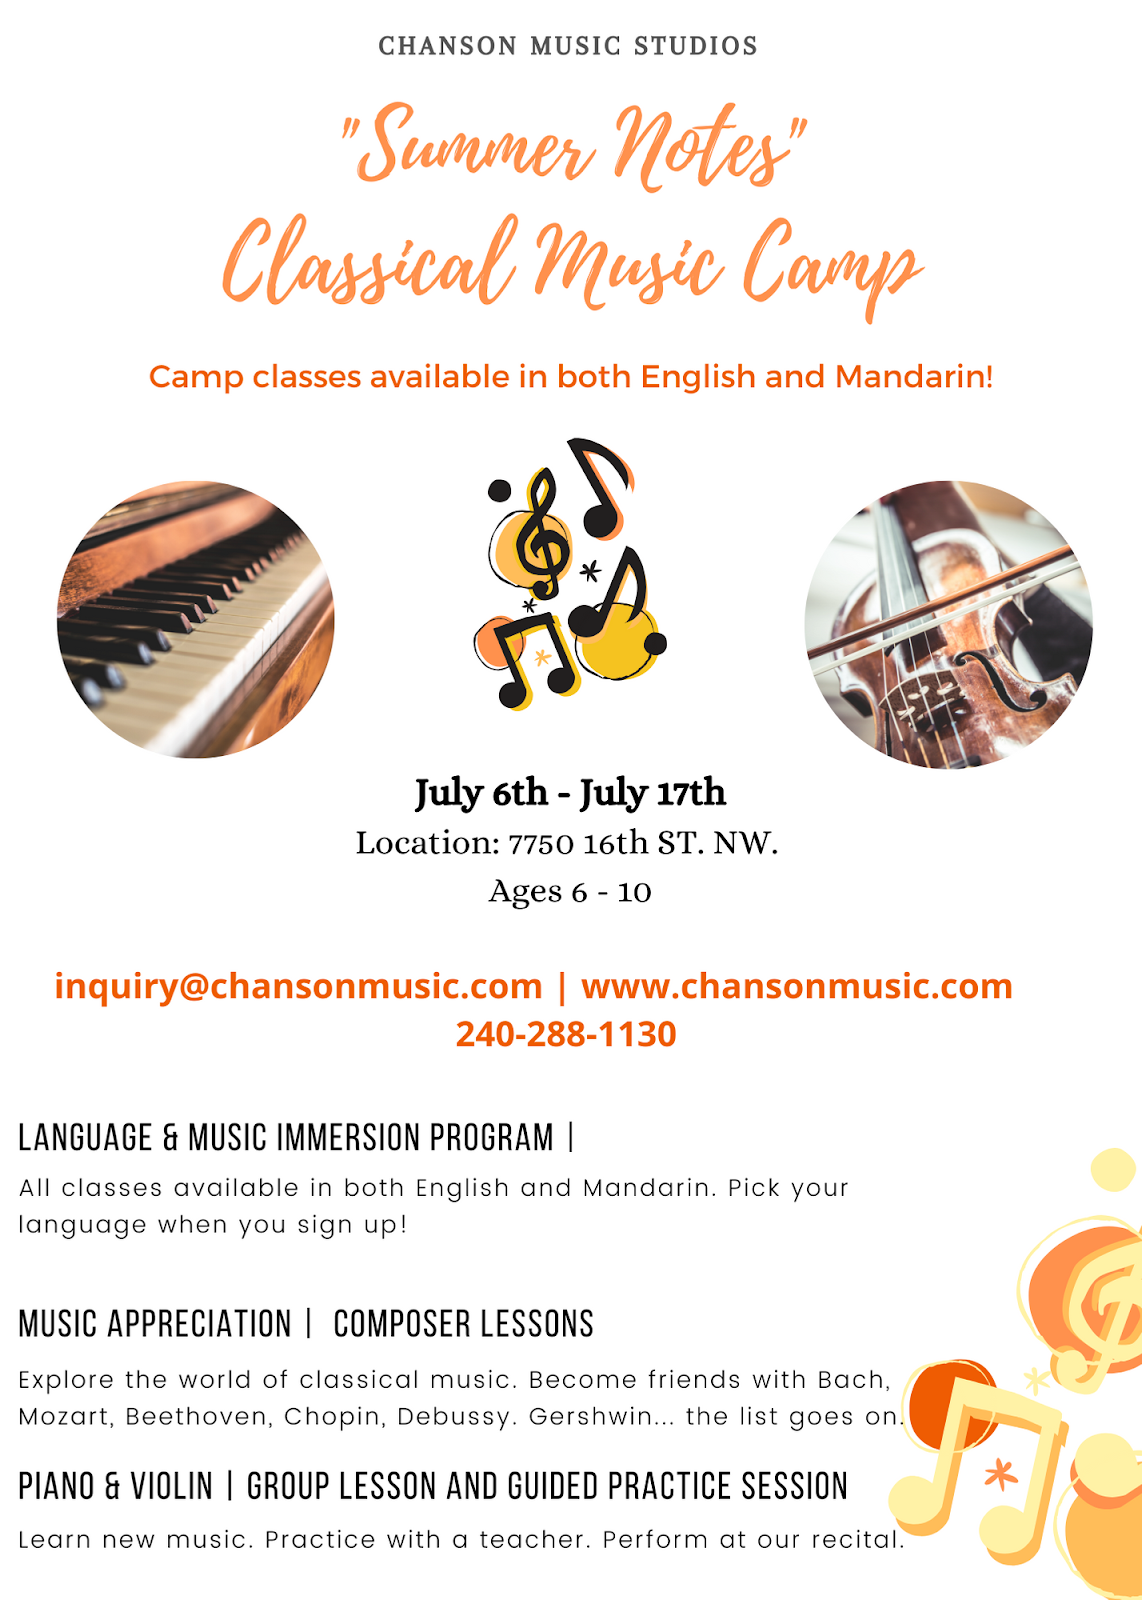 https://www.chansonmusic.com/summer-camp